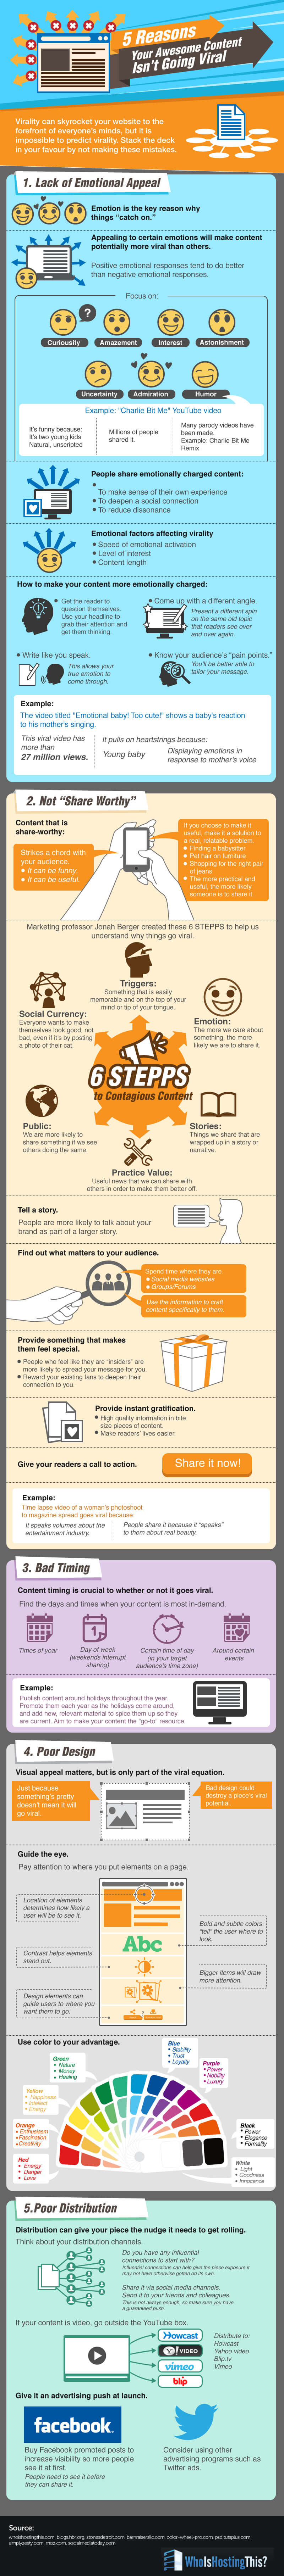 Reasons-Your-Awesome-Content-Isnt-Going-Viral